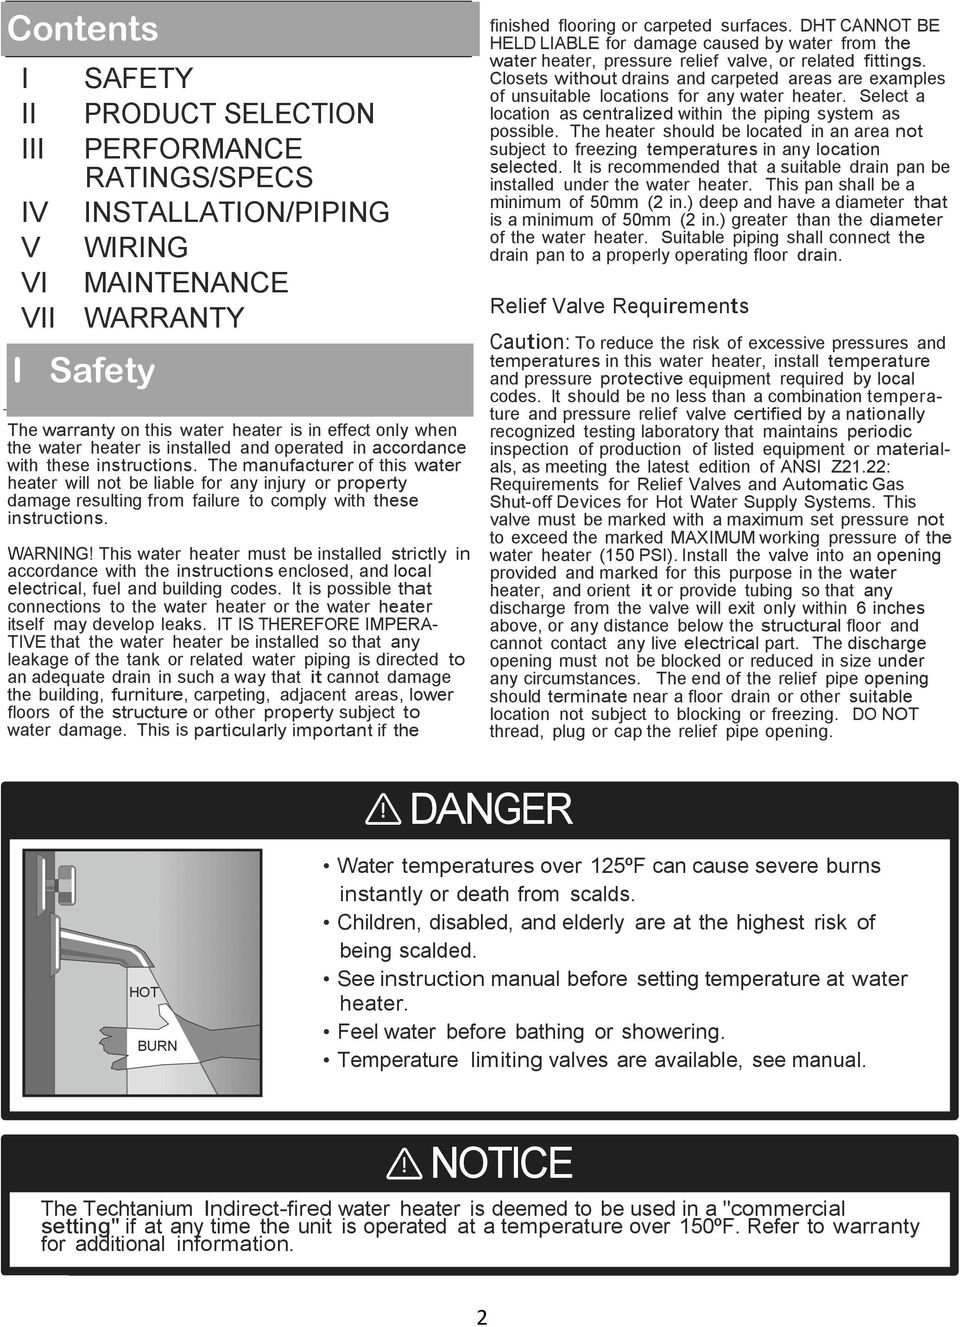 Guarantee of safe operation of the water heater